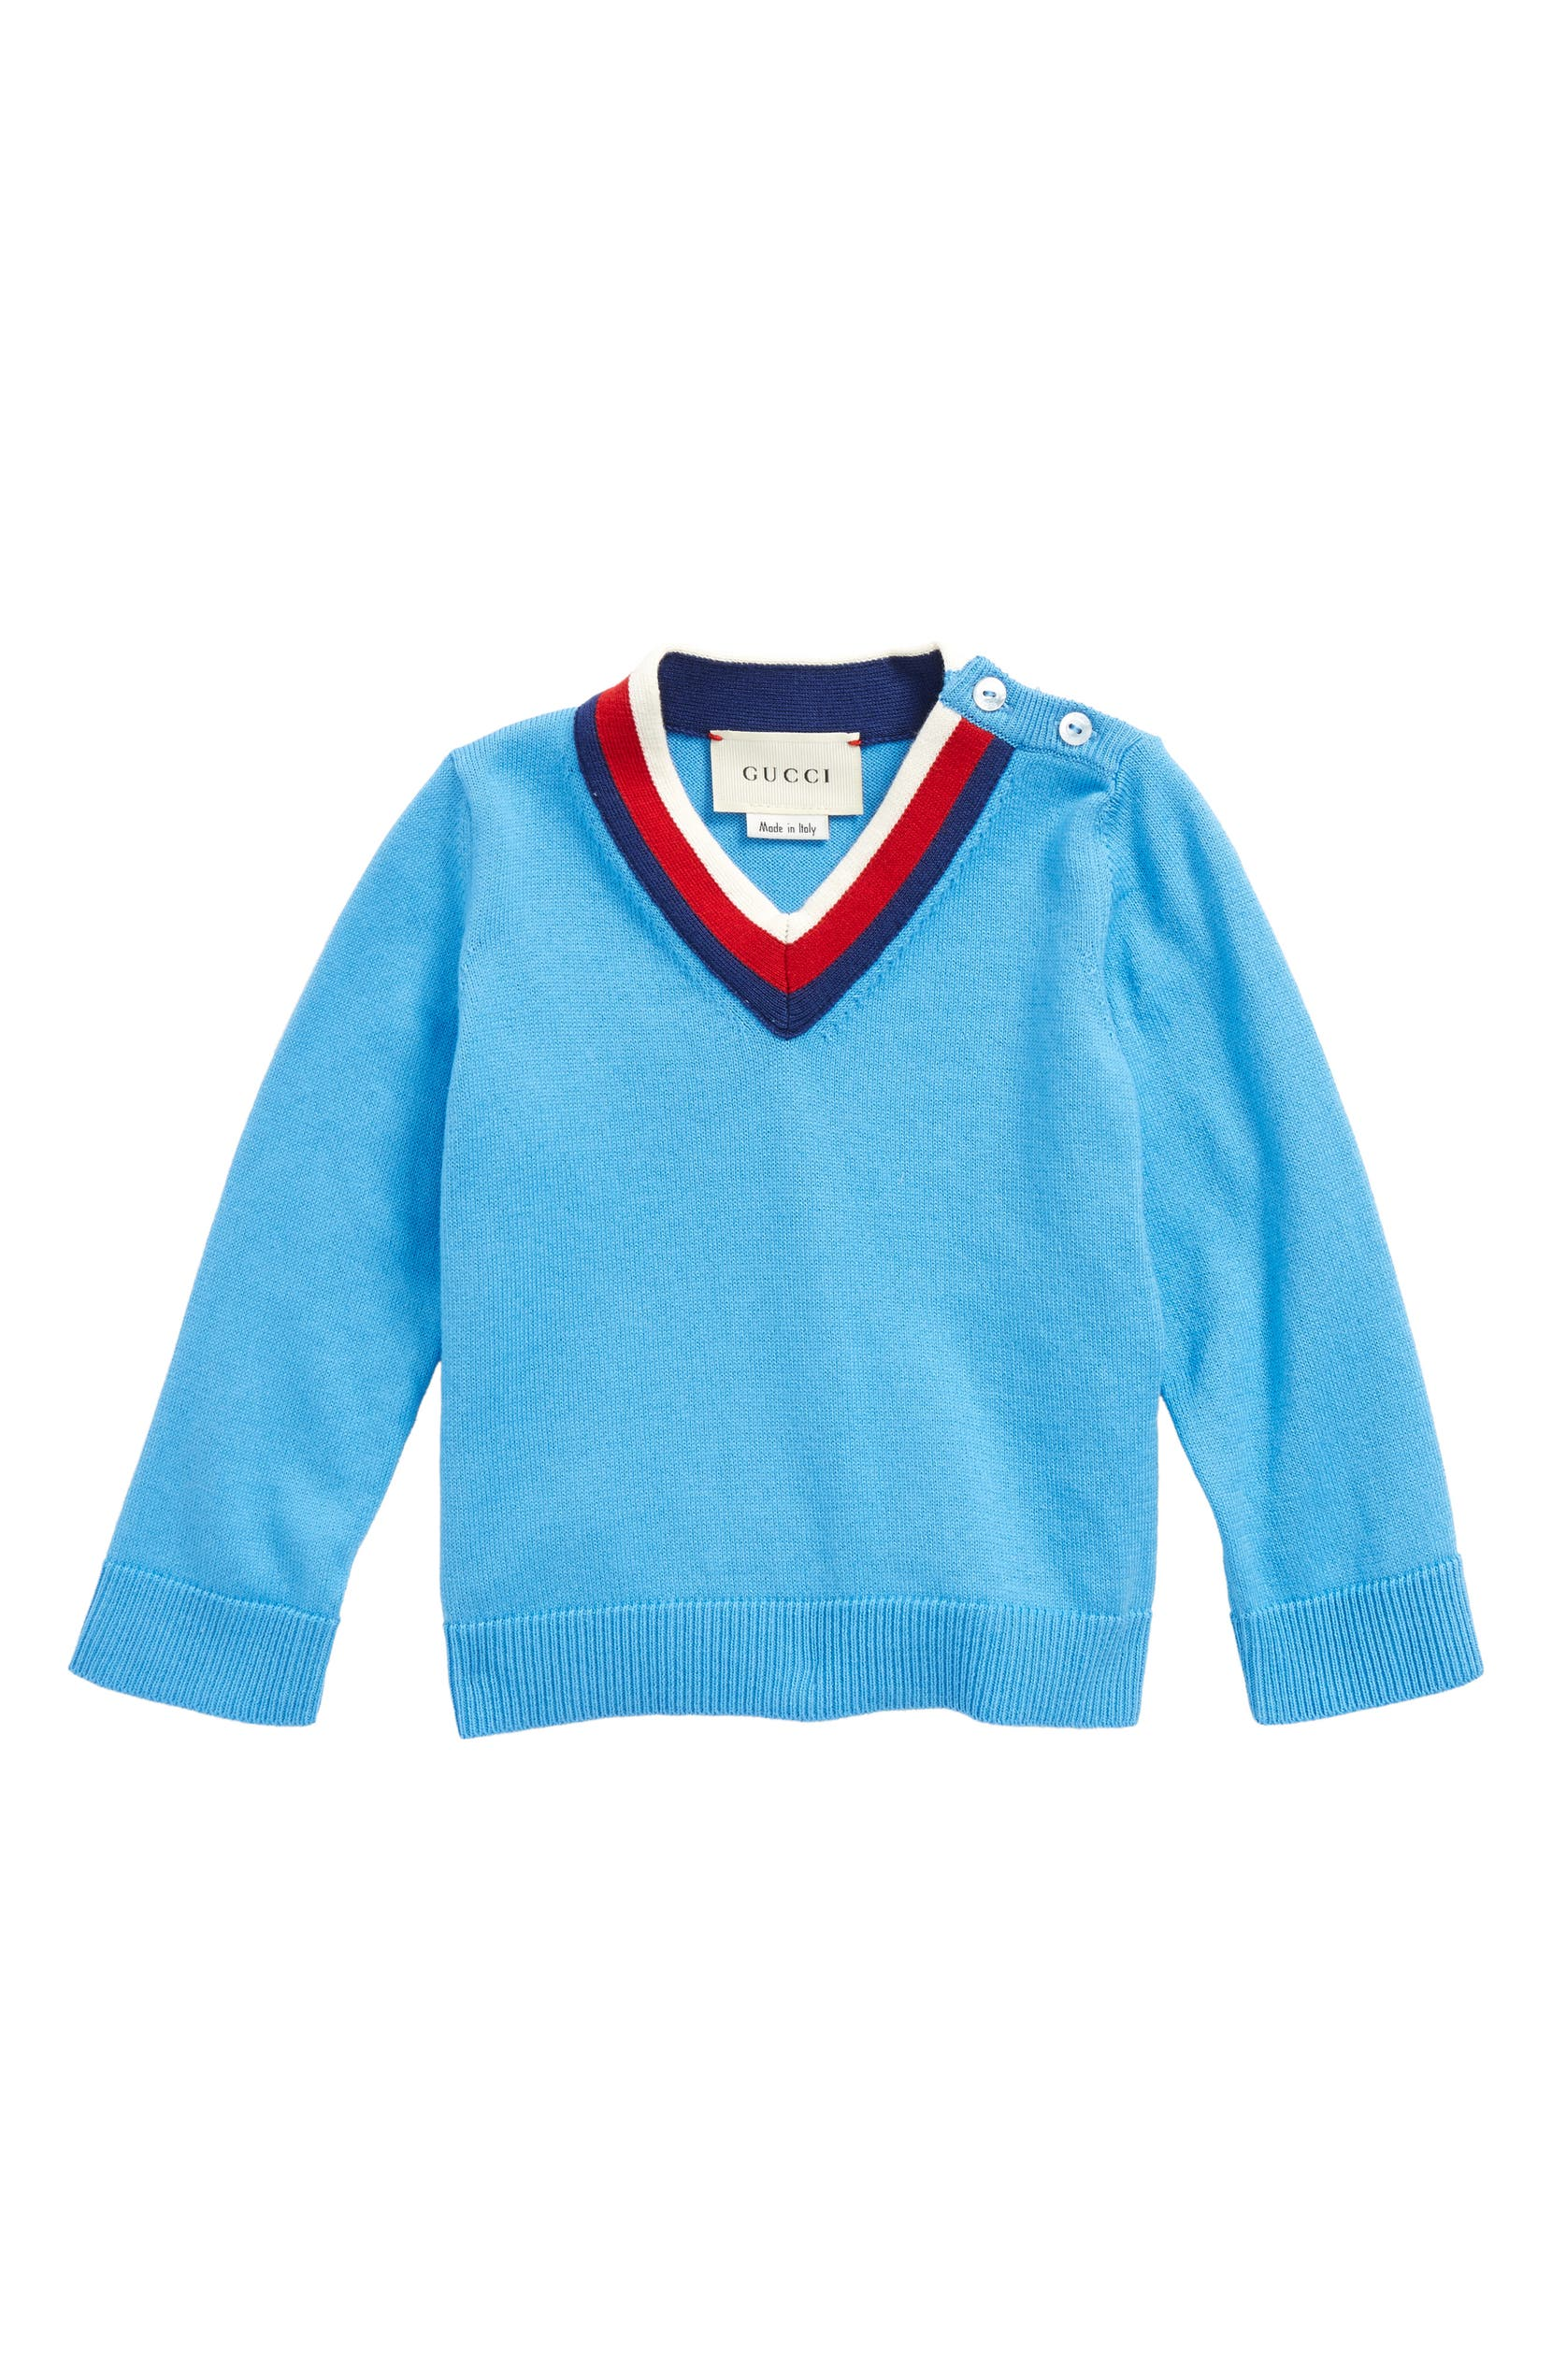 59ab45d21d29 Gucci V-Neck Sweater (Baby Boys)